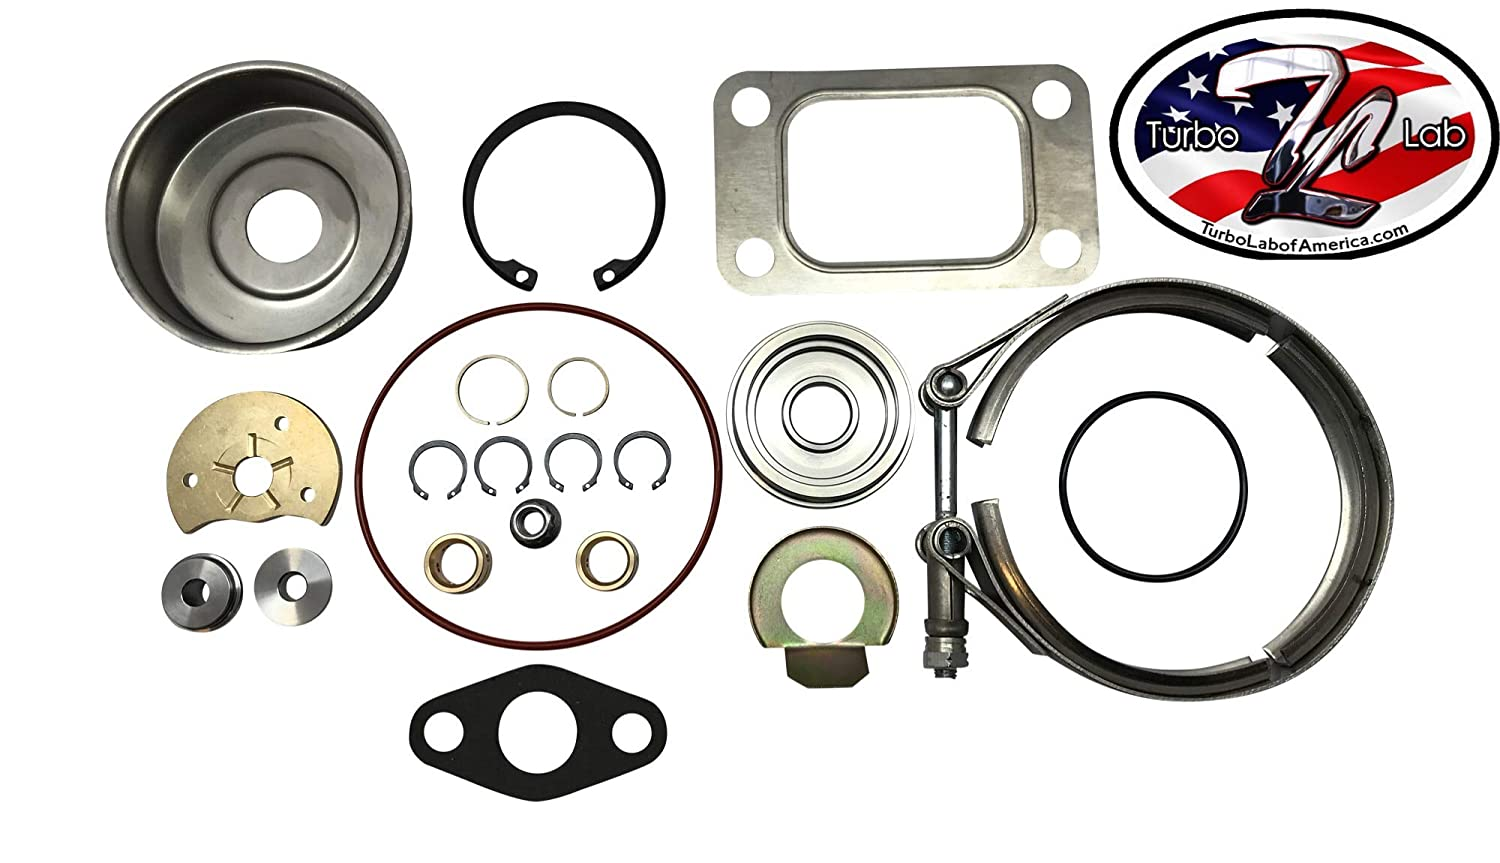 HE341 HE351CW HY35 Turbo Rebuild Kit+Vband Clamp 4031484 Turbo Lab of America